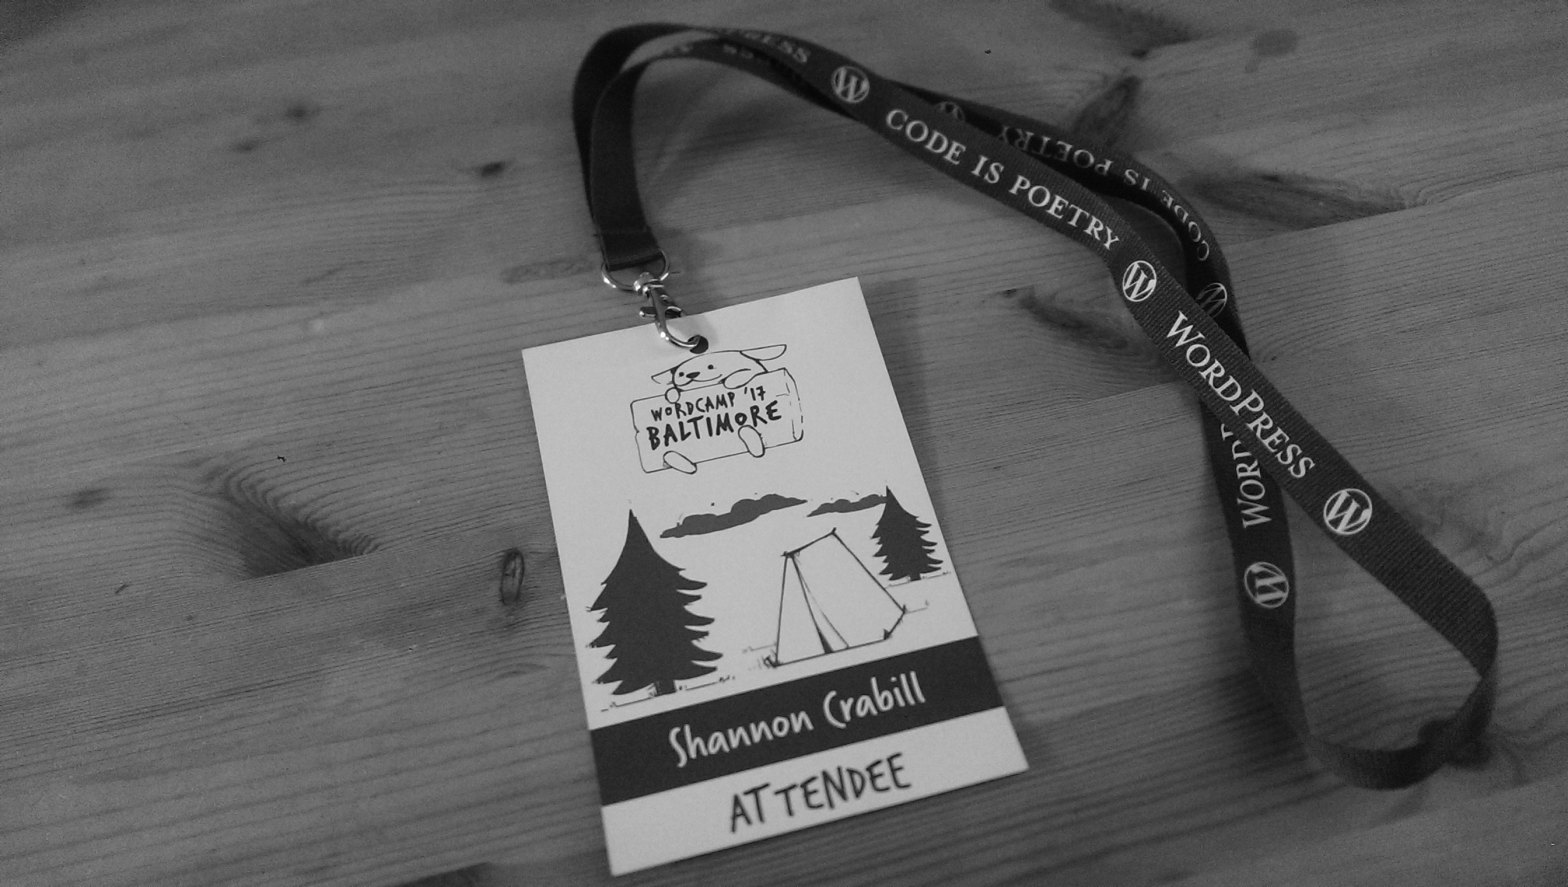 Lanyard from the 2017 Baltimore Wordcamp